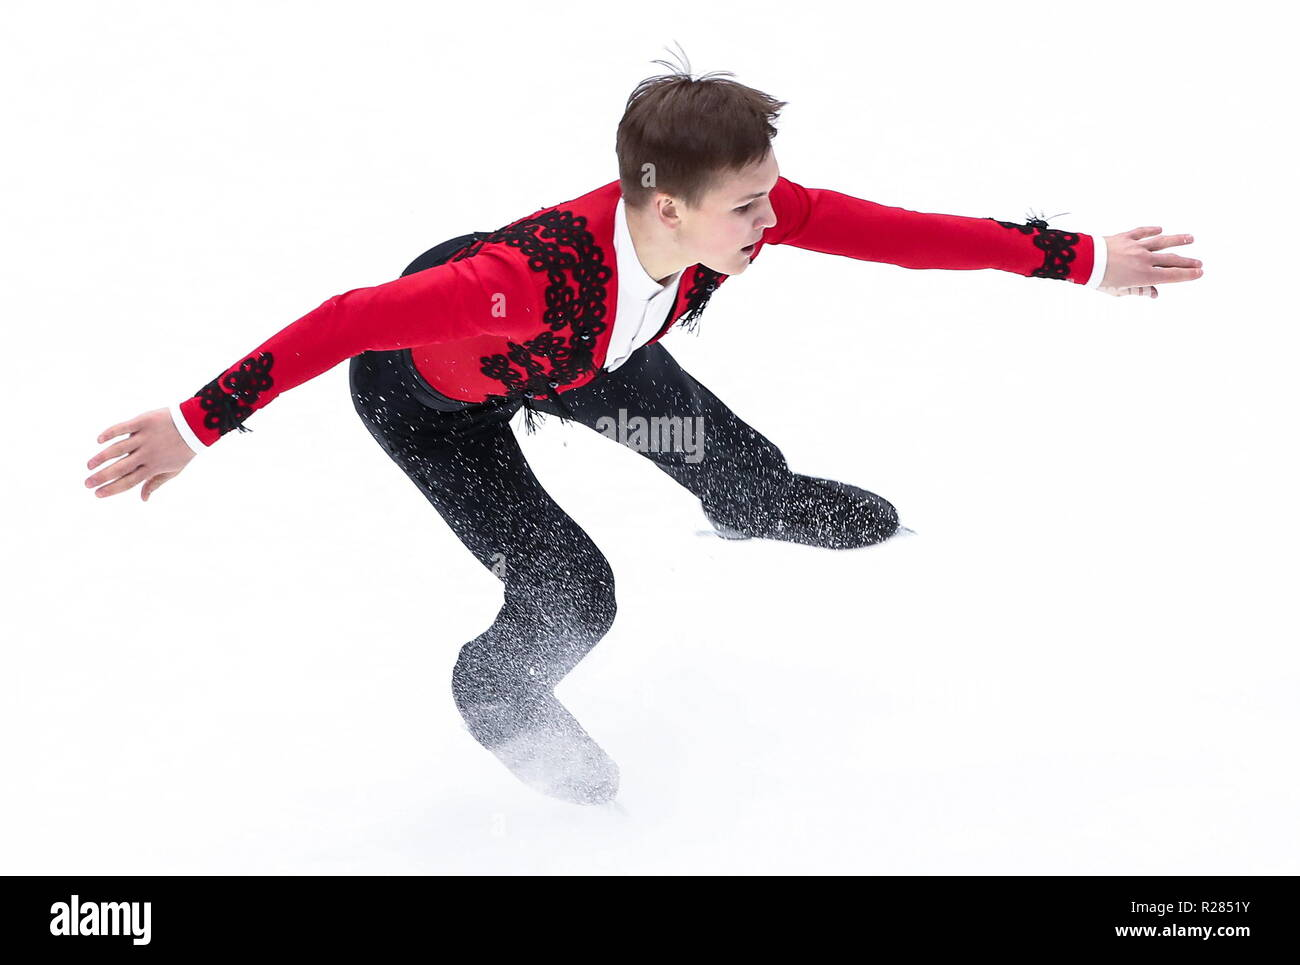 Moscow, Russia. 17th November 2018. MOSCOW, RUSSIA - NOVEMBER 17, 2018: Mikhail Kolyada of Russia performs his men's free skating programme at the 2018/19 ISU Grand Prix of Figure Skating Rostelecom Cup at Megasport Arena. Valery Sharifulin/TASS Credit: ITAR-TASS News Agency/Alamy Live News - Stock Image